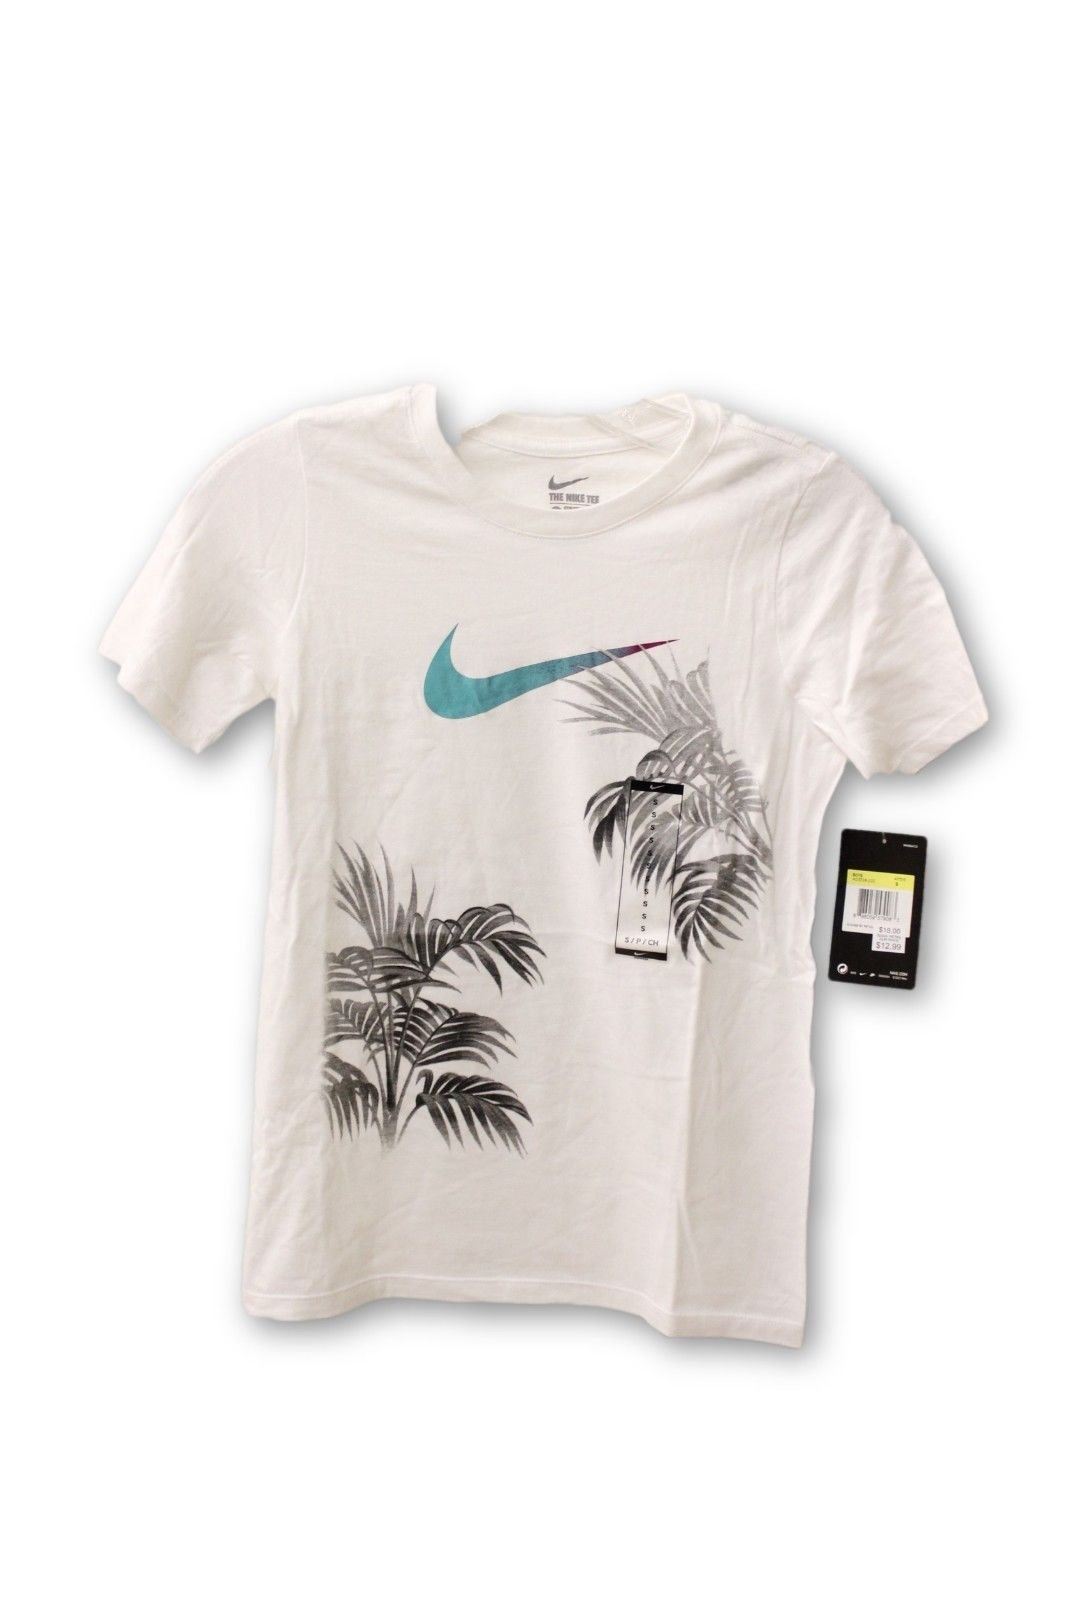 ec8a447f Nike Boy's Athletic Cut Graphic T Shirt White Swoosh with Palm Trees ...